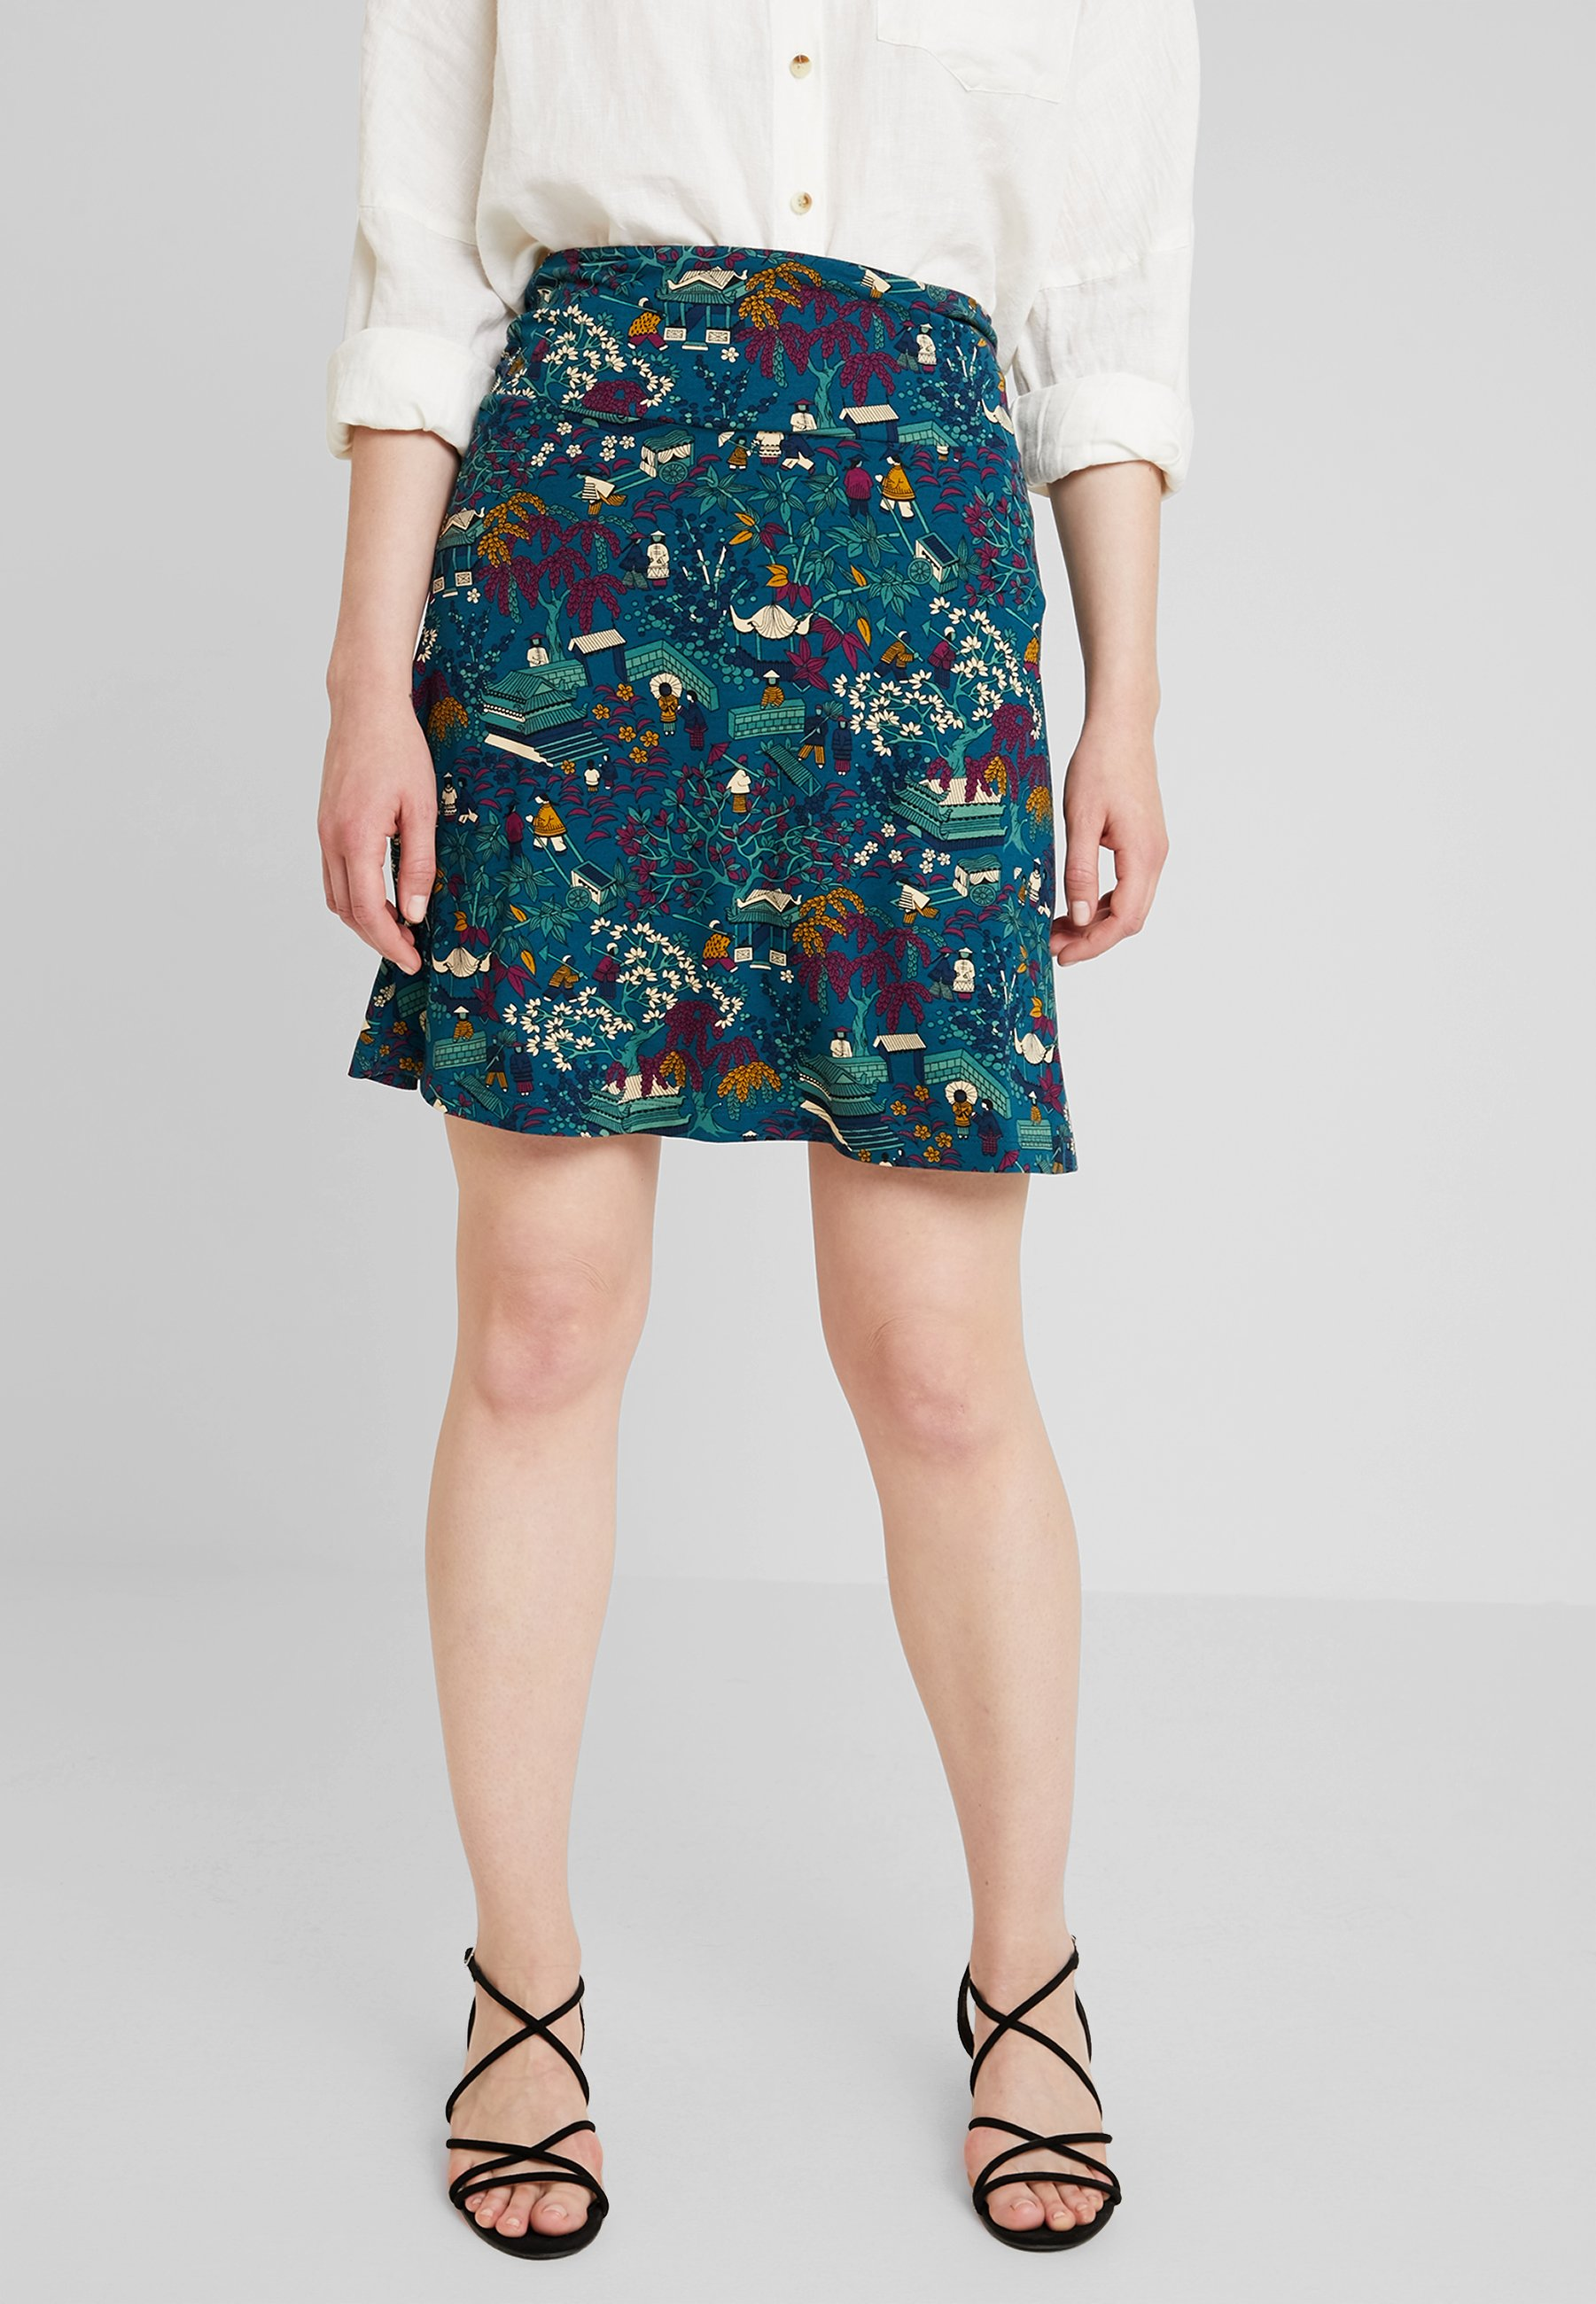 King Louie BORDER SKIRT MANZAI - Gonna a campana autumn blue